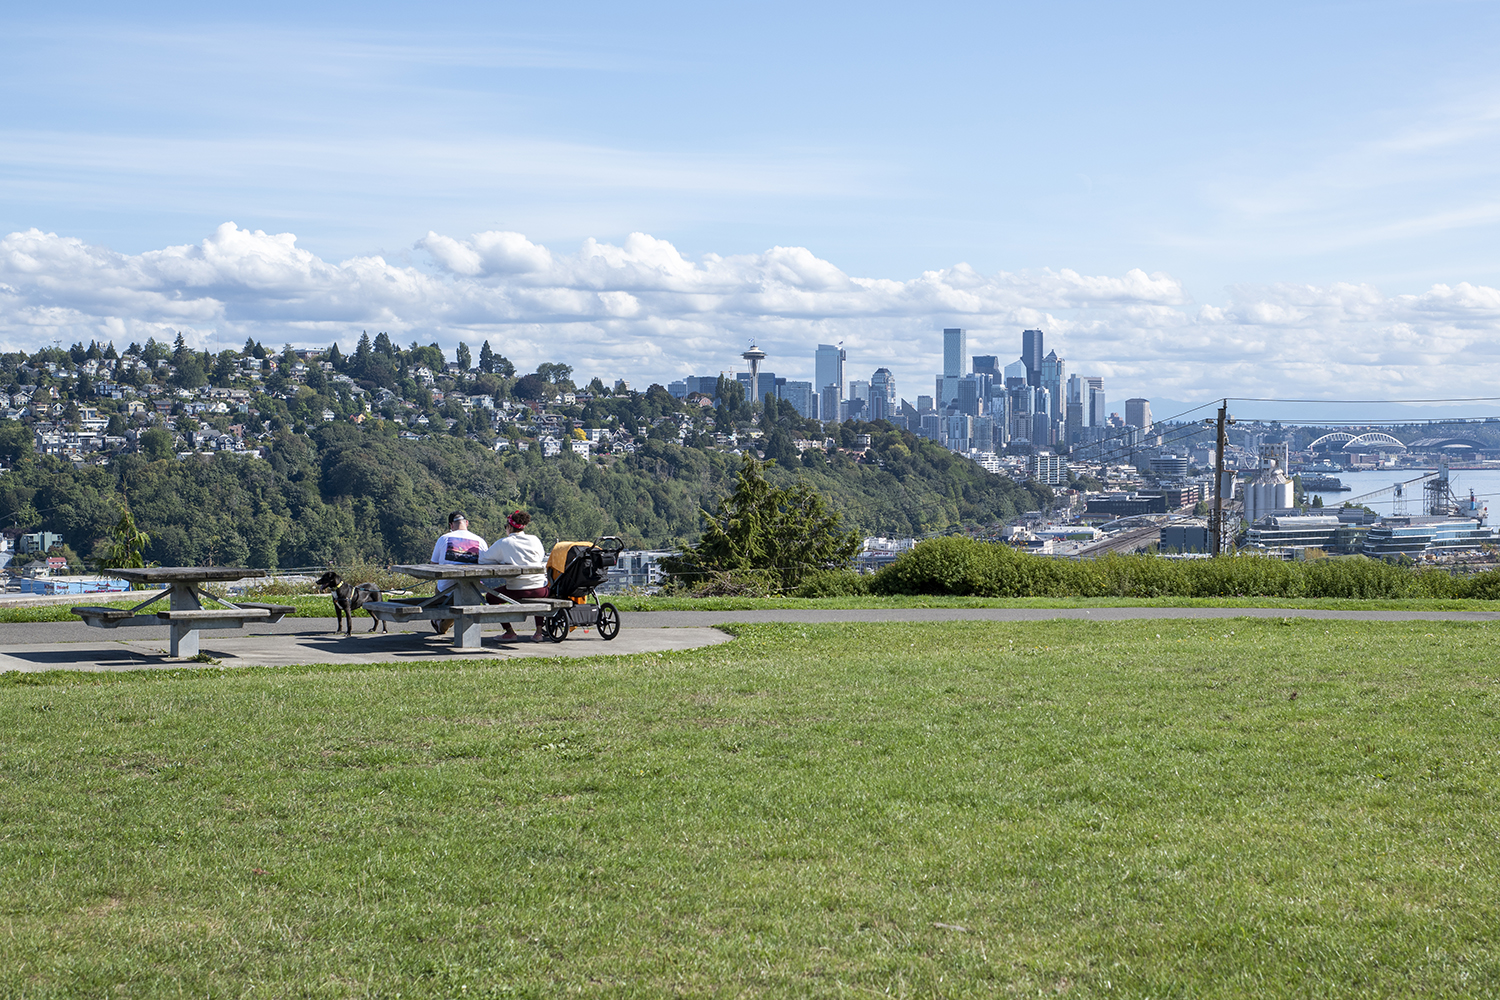 Looking for a little less crowded Seattle park to enjoy a social distanced mid-day break? On a sunny day, Ella Bailey Park is the perfect spot for sweeping downtown views with only a handful of others. The hilly park features plenty of open space for a picnic, a large community playground, picnic tables and stunning views of Mt. Rainier. (Image: Rachael Jones / Seattle Refined)